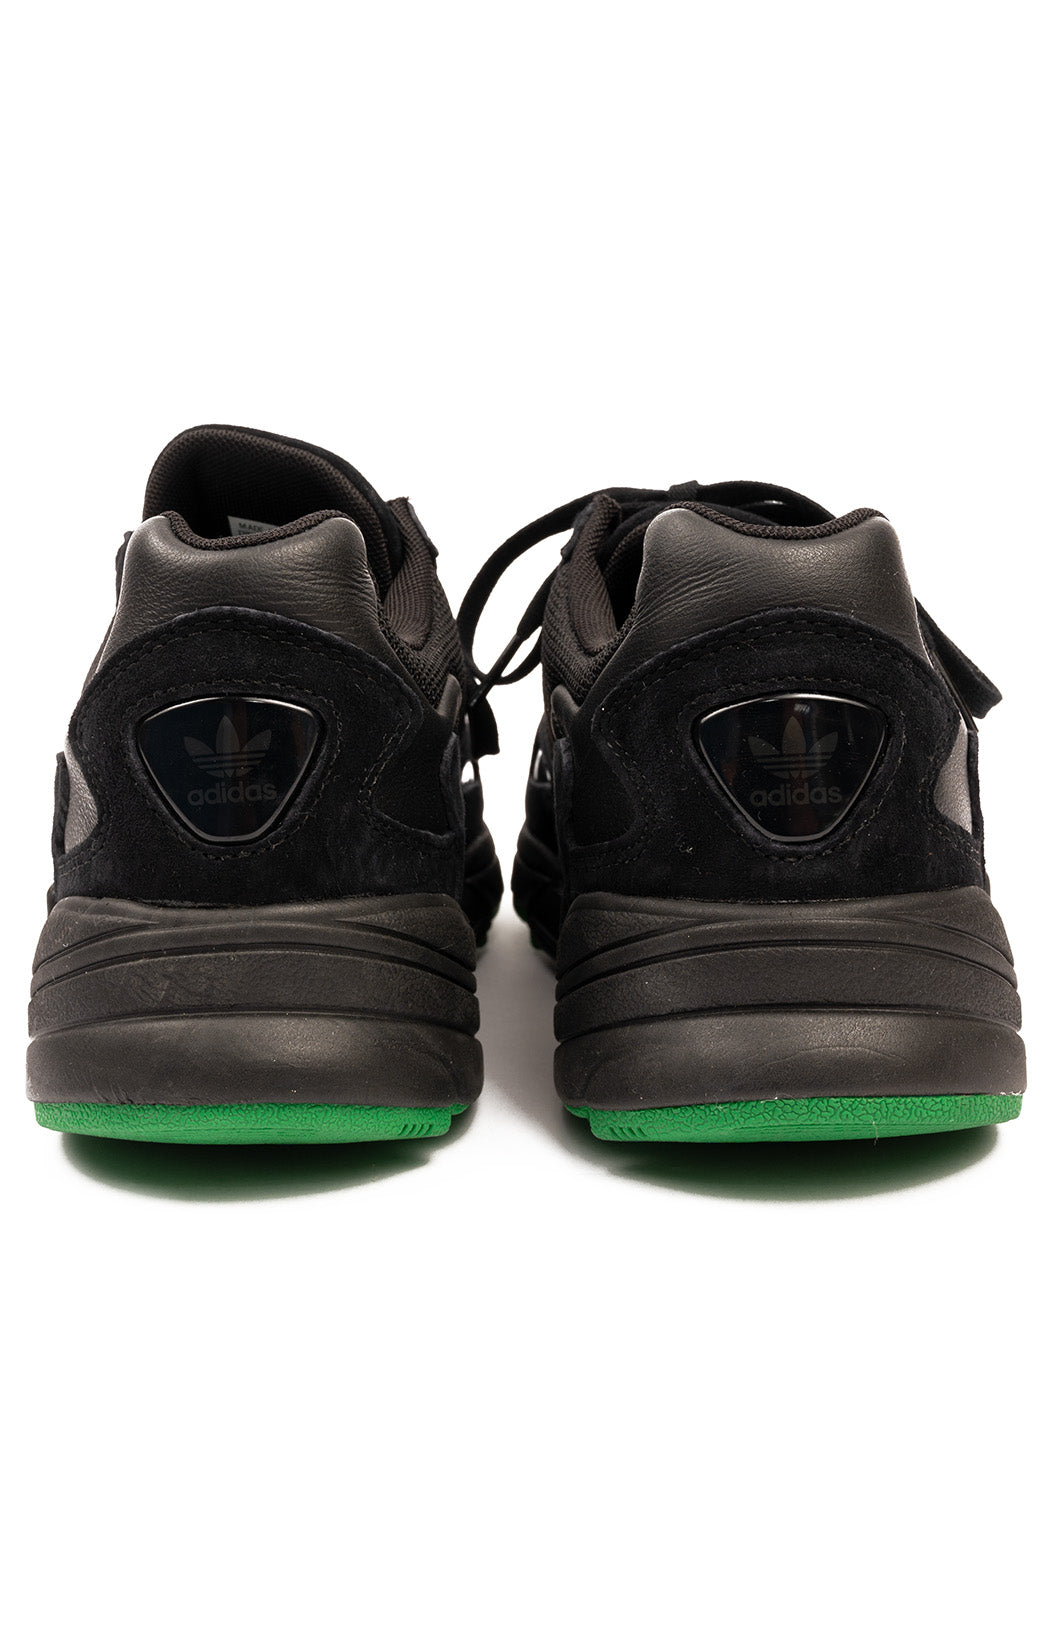 Black Torsion lace-up shoe With green accent color on bottom